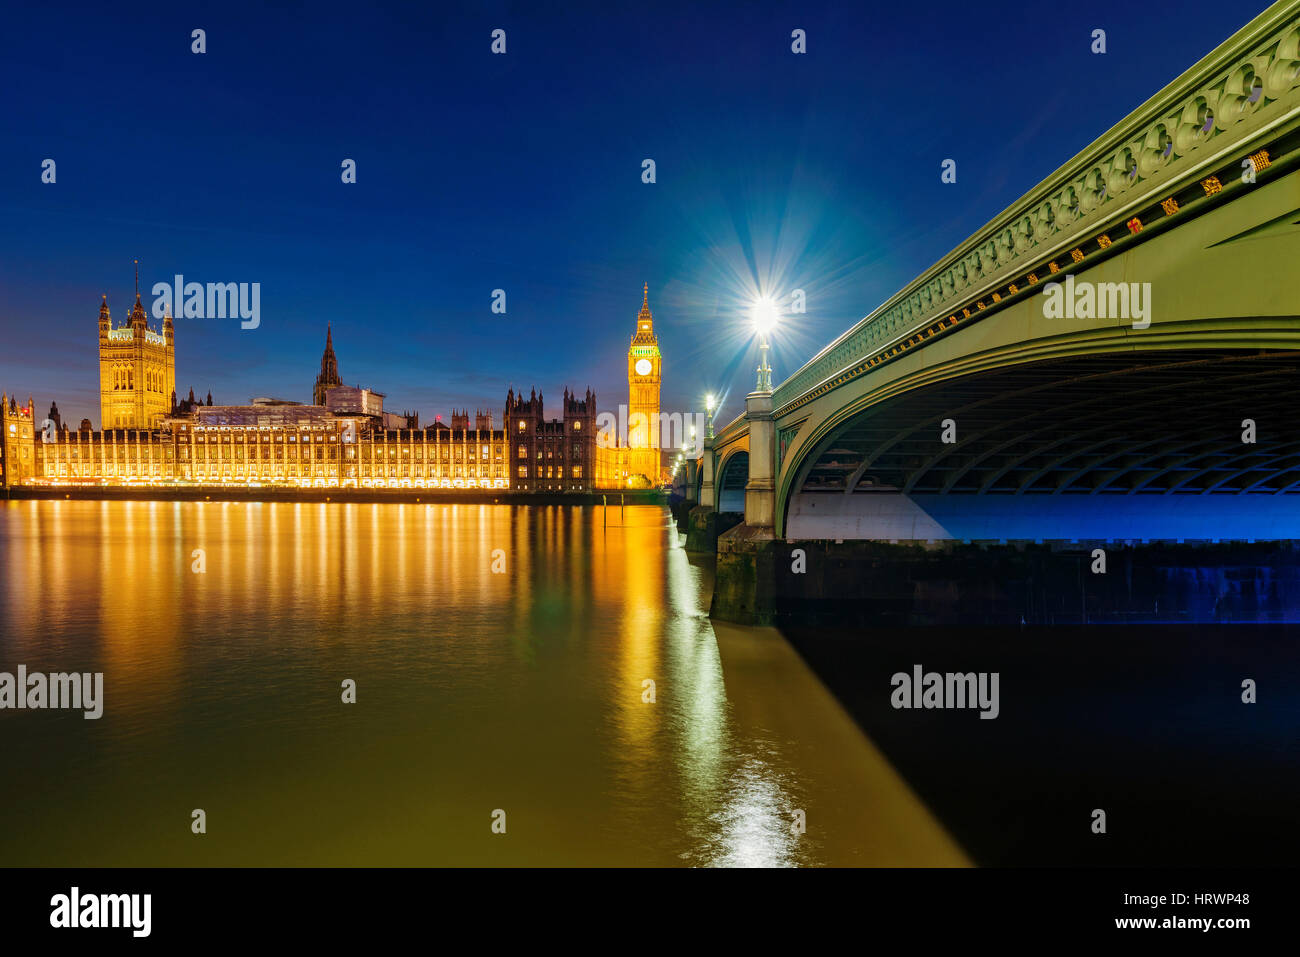 View of Houses of Parliament and River Thames at night Stock Photo